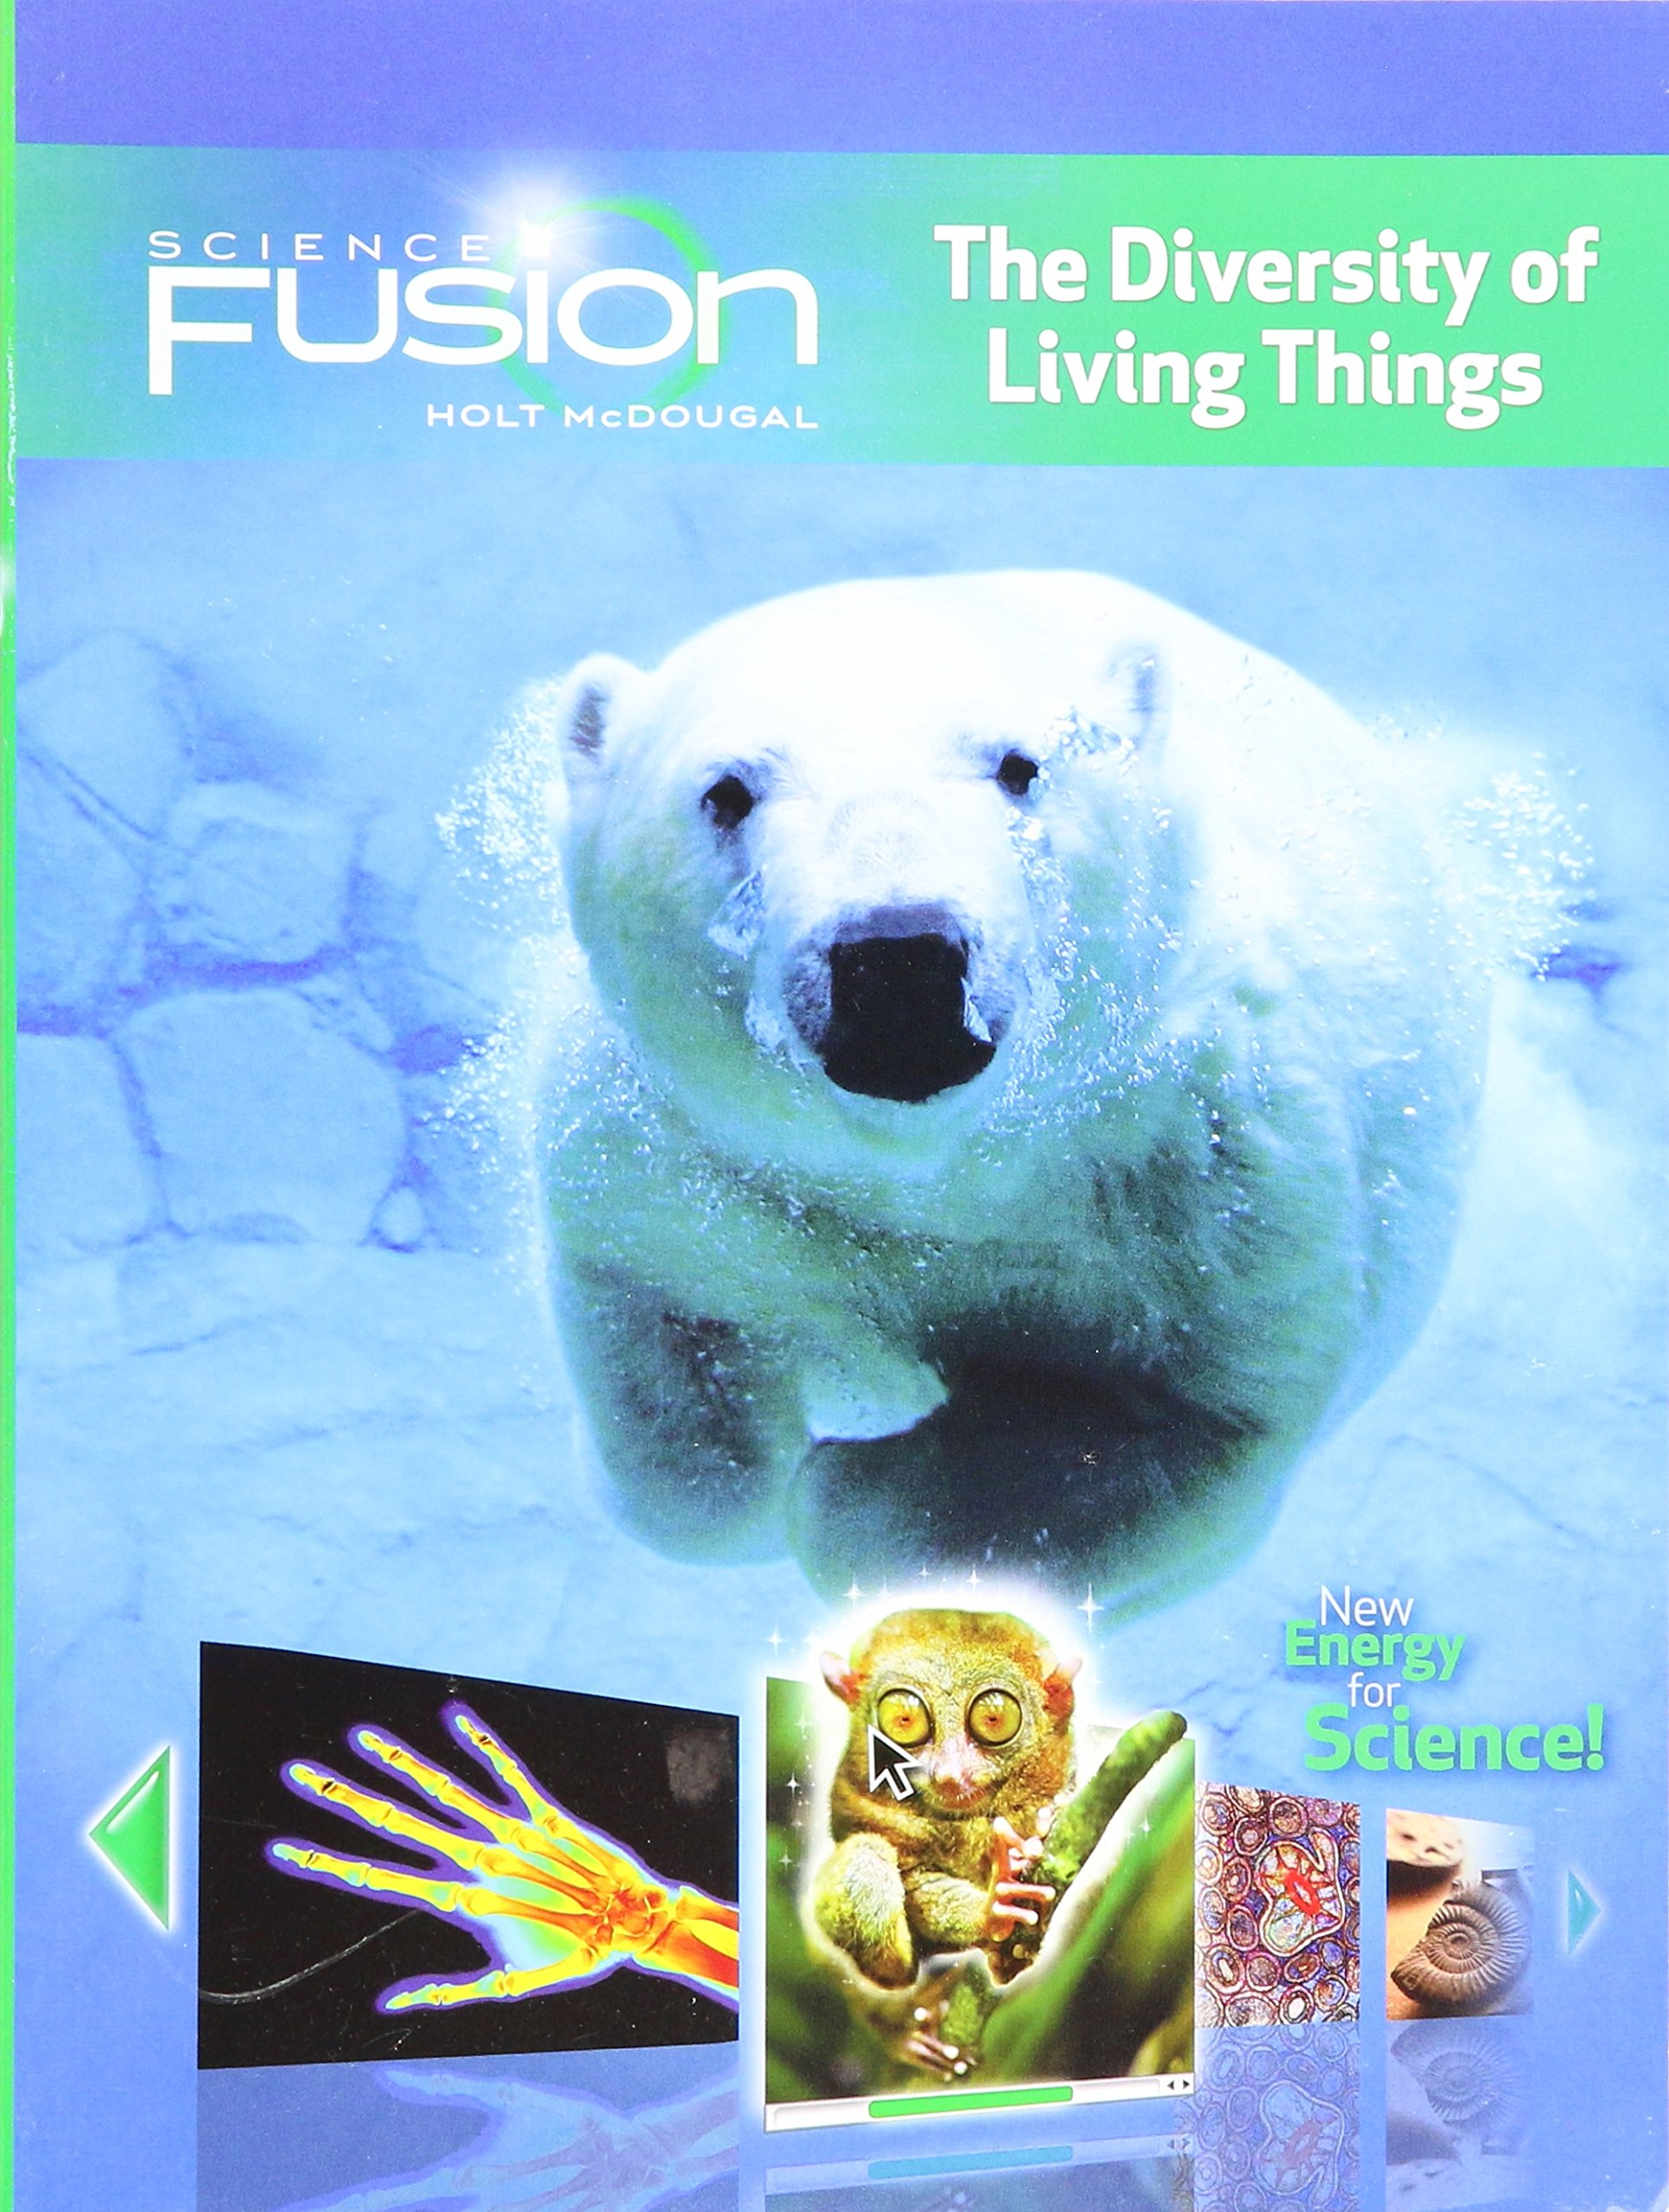 Sciencefusion module b the diversity of living things interactive sciencefusion module b the diversity of living things interactive worktext grades 6 8 student edition despezio 9780547589312 amazon books fandeluxe Image collections